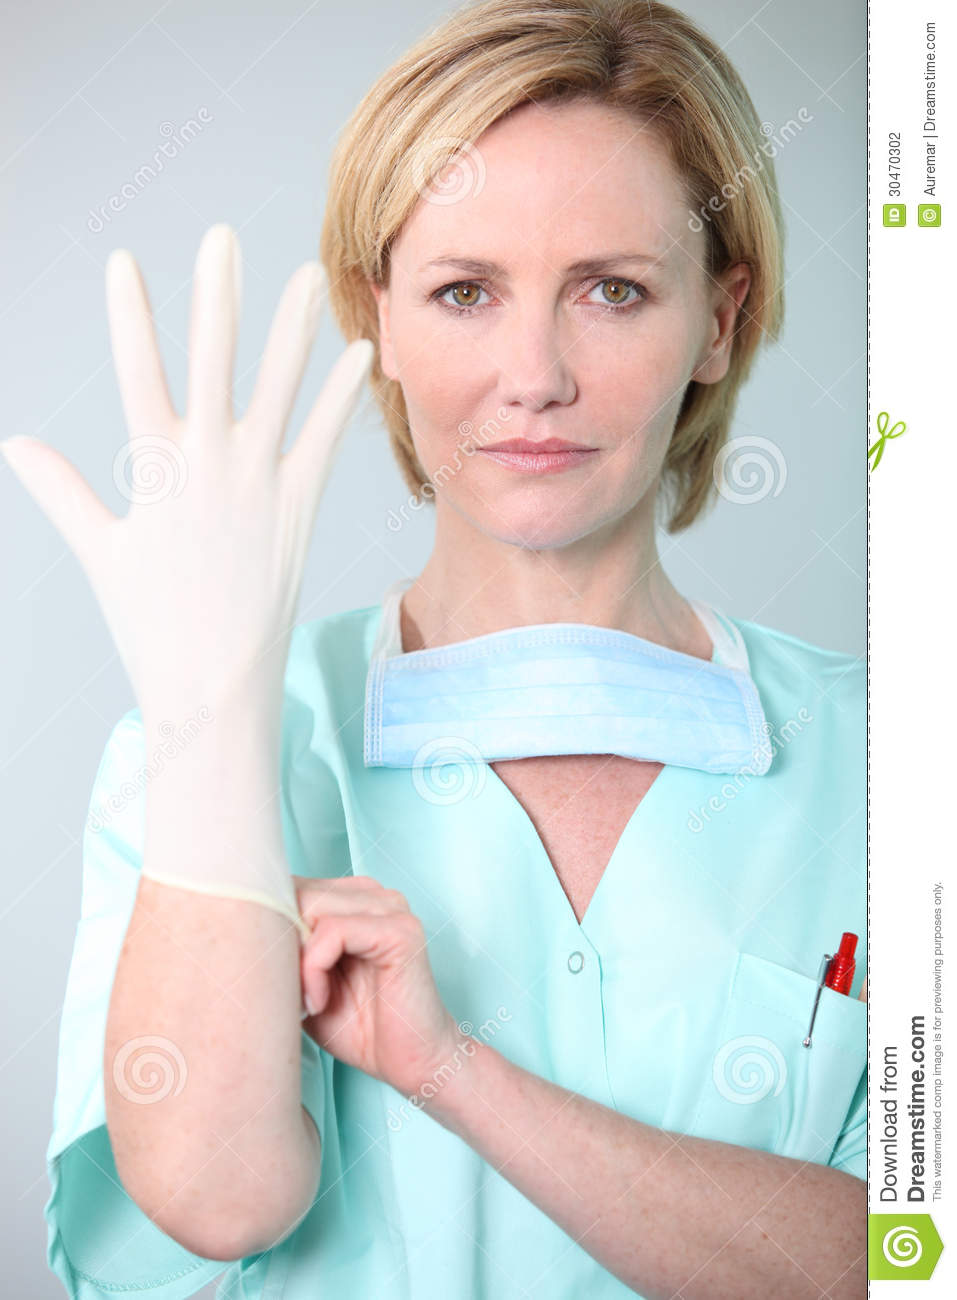 The latex glove hand rash cure Awesome!